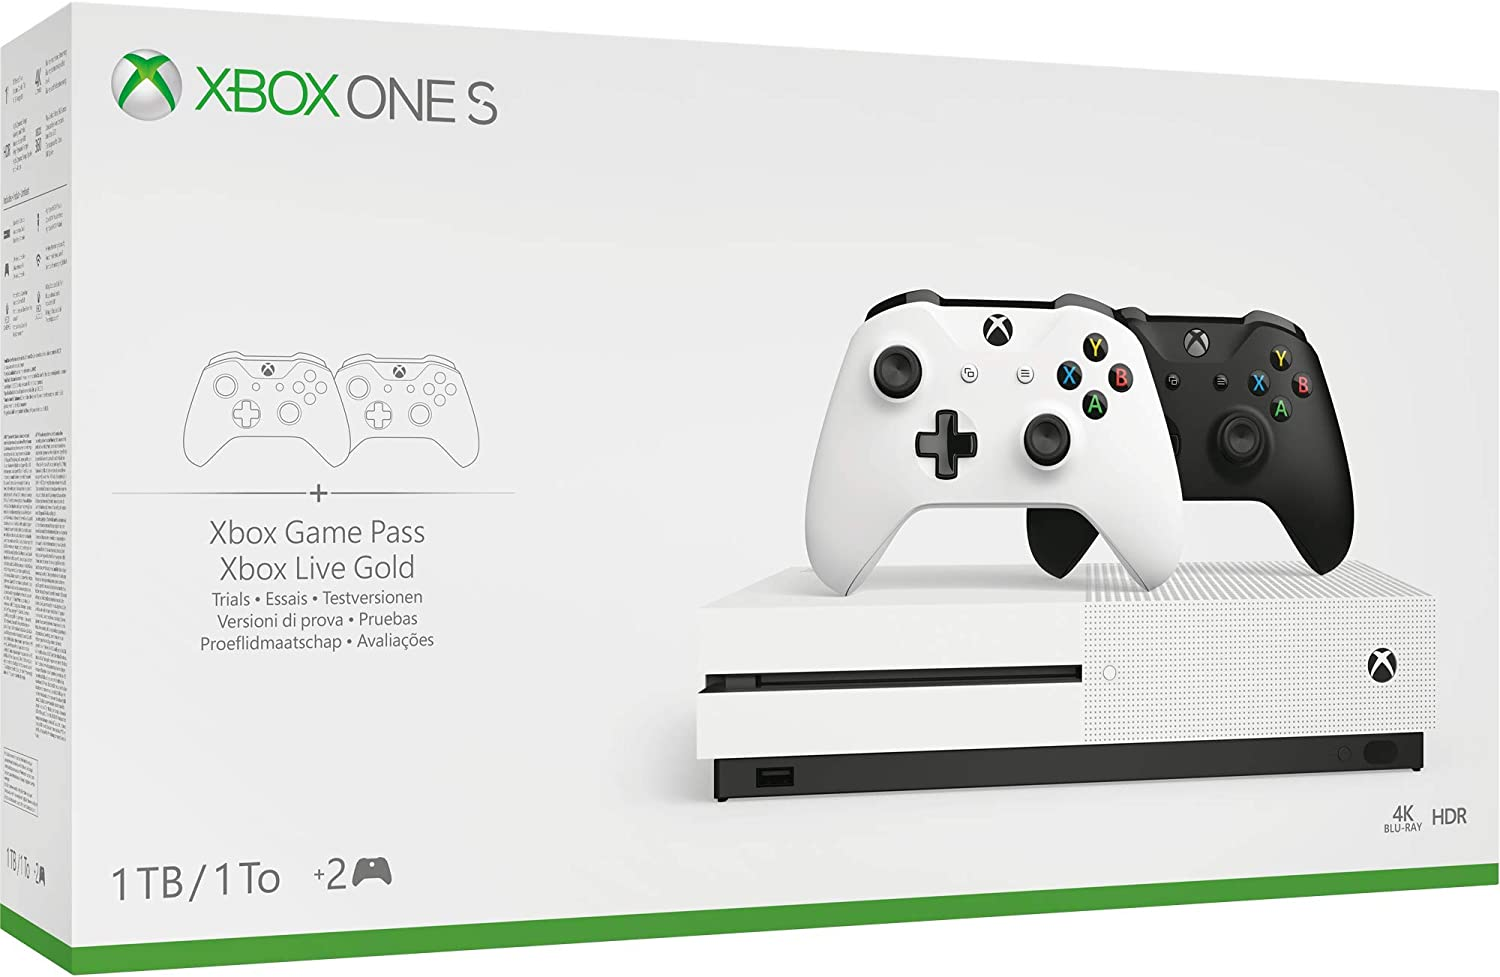 Pack Xbox One S con 2 mandos (Edición Exclusiva Amazon): Amazon.es: Videojuegos